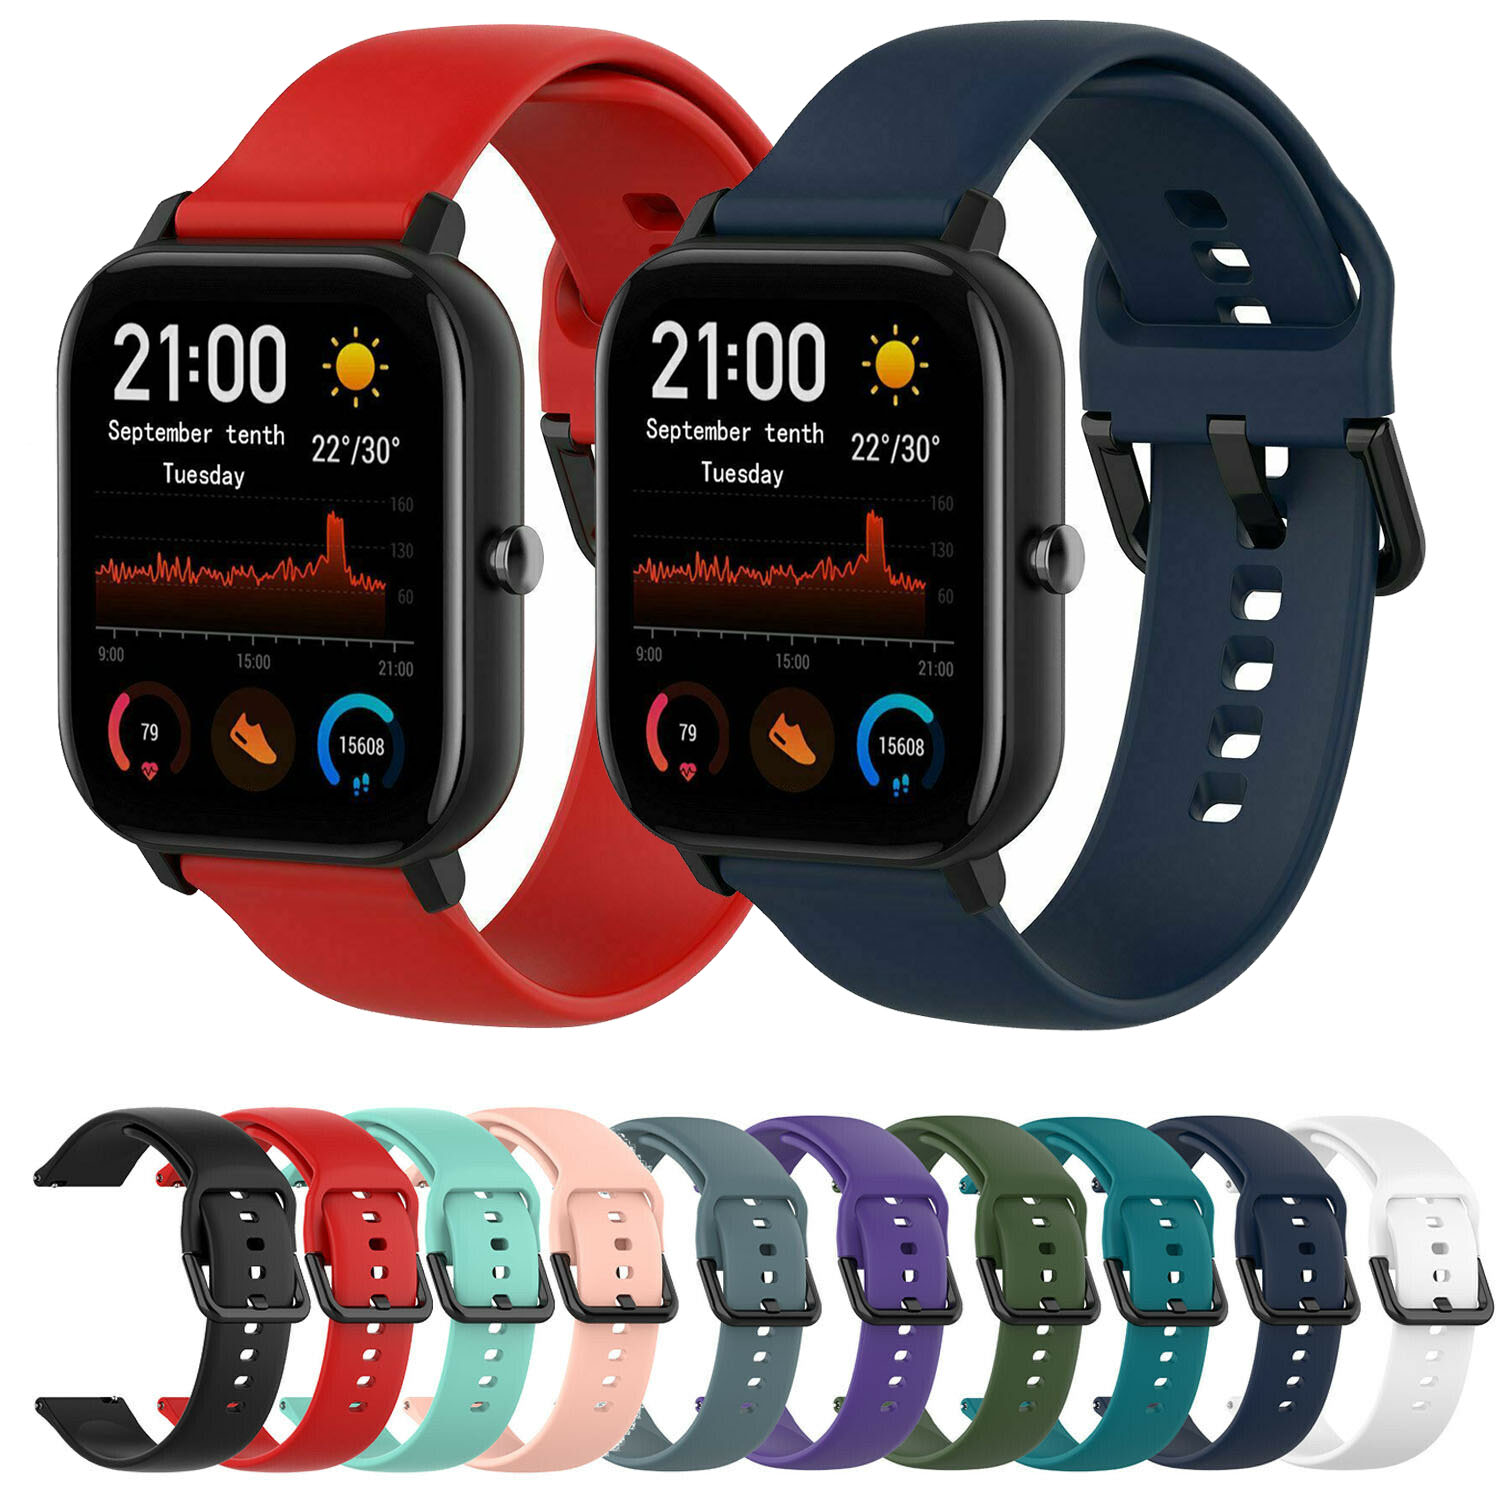 <font><b>20MM</b></font> Silicone Sport <font><b>Watch</b></font> Band For Samsung Galaxy <font><b>Watch</b></font> Active <font><b>Strap</b></font> Galaxy <font><b>Watch</b></font> 42mm Rubber Watchband For Amazfit BIP <font><b>GTS</b></font> Band image